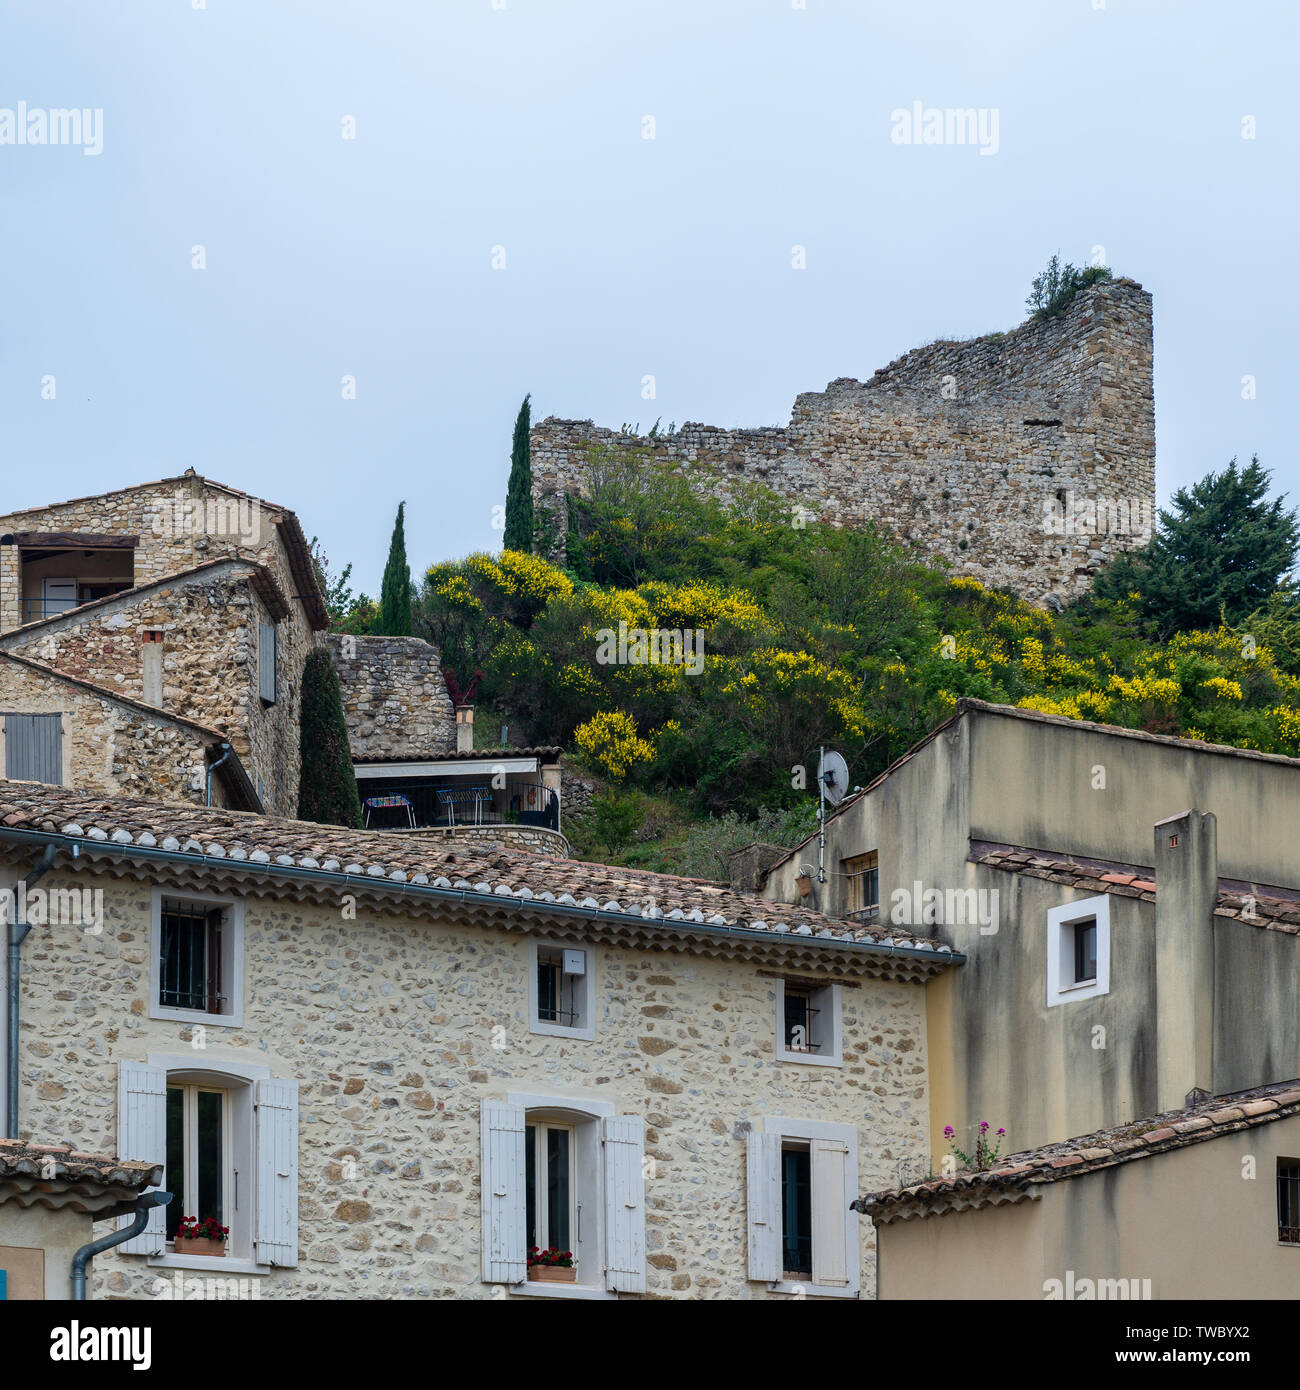 Castle ruins at the ancient city of Gigondas in southern France. - Stock Image